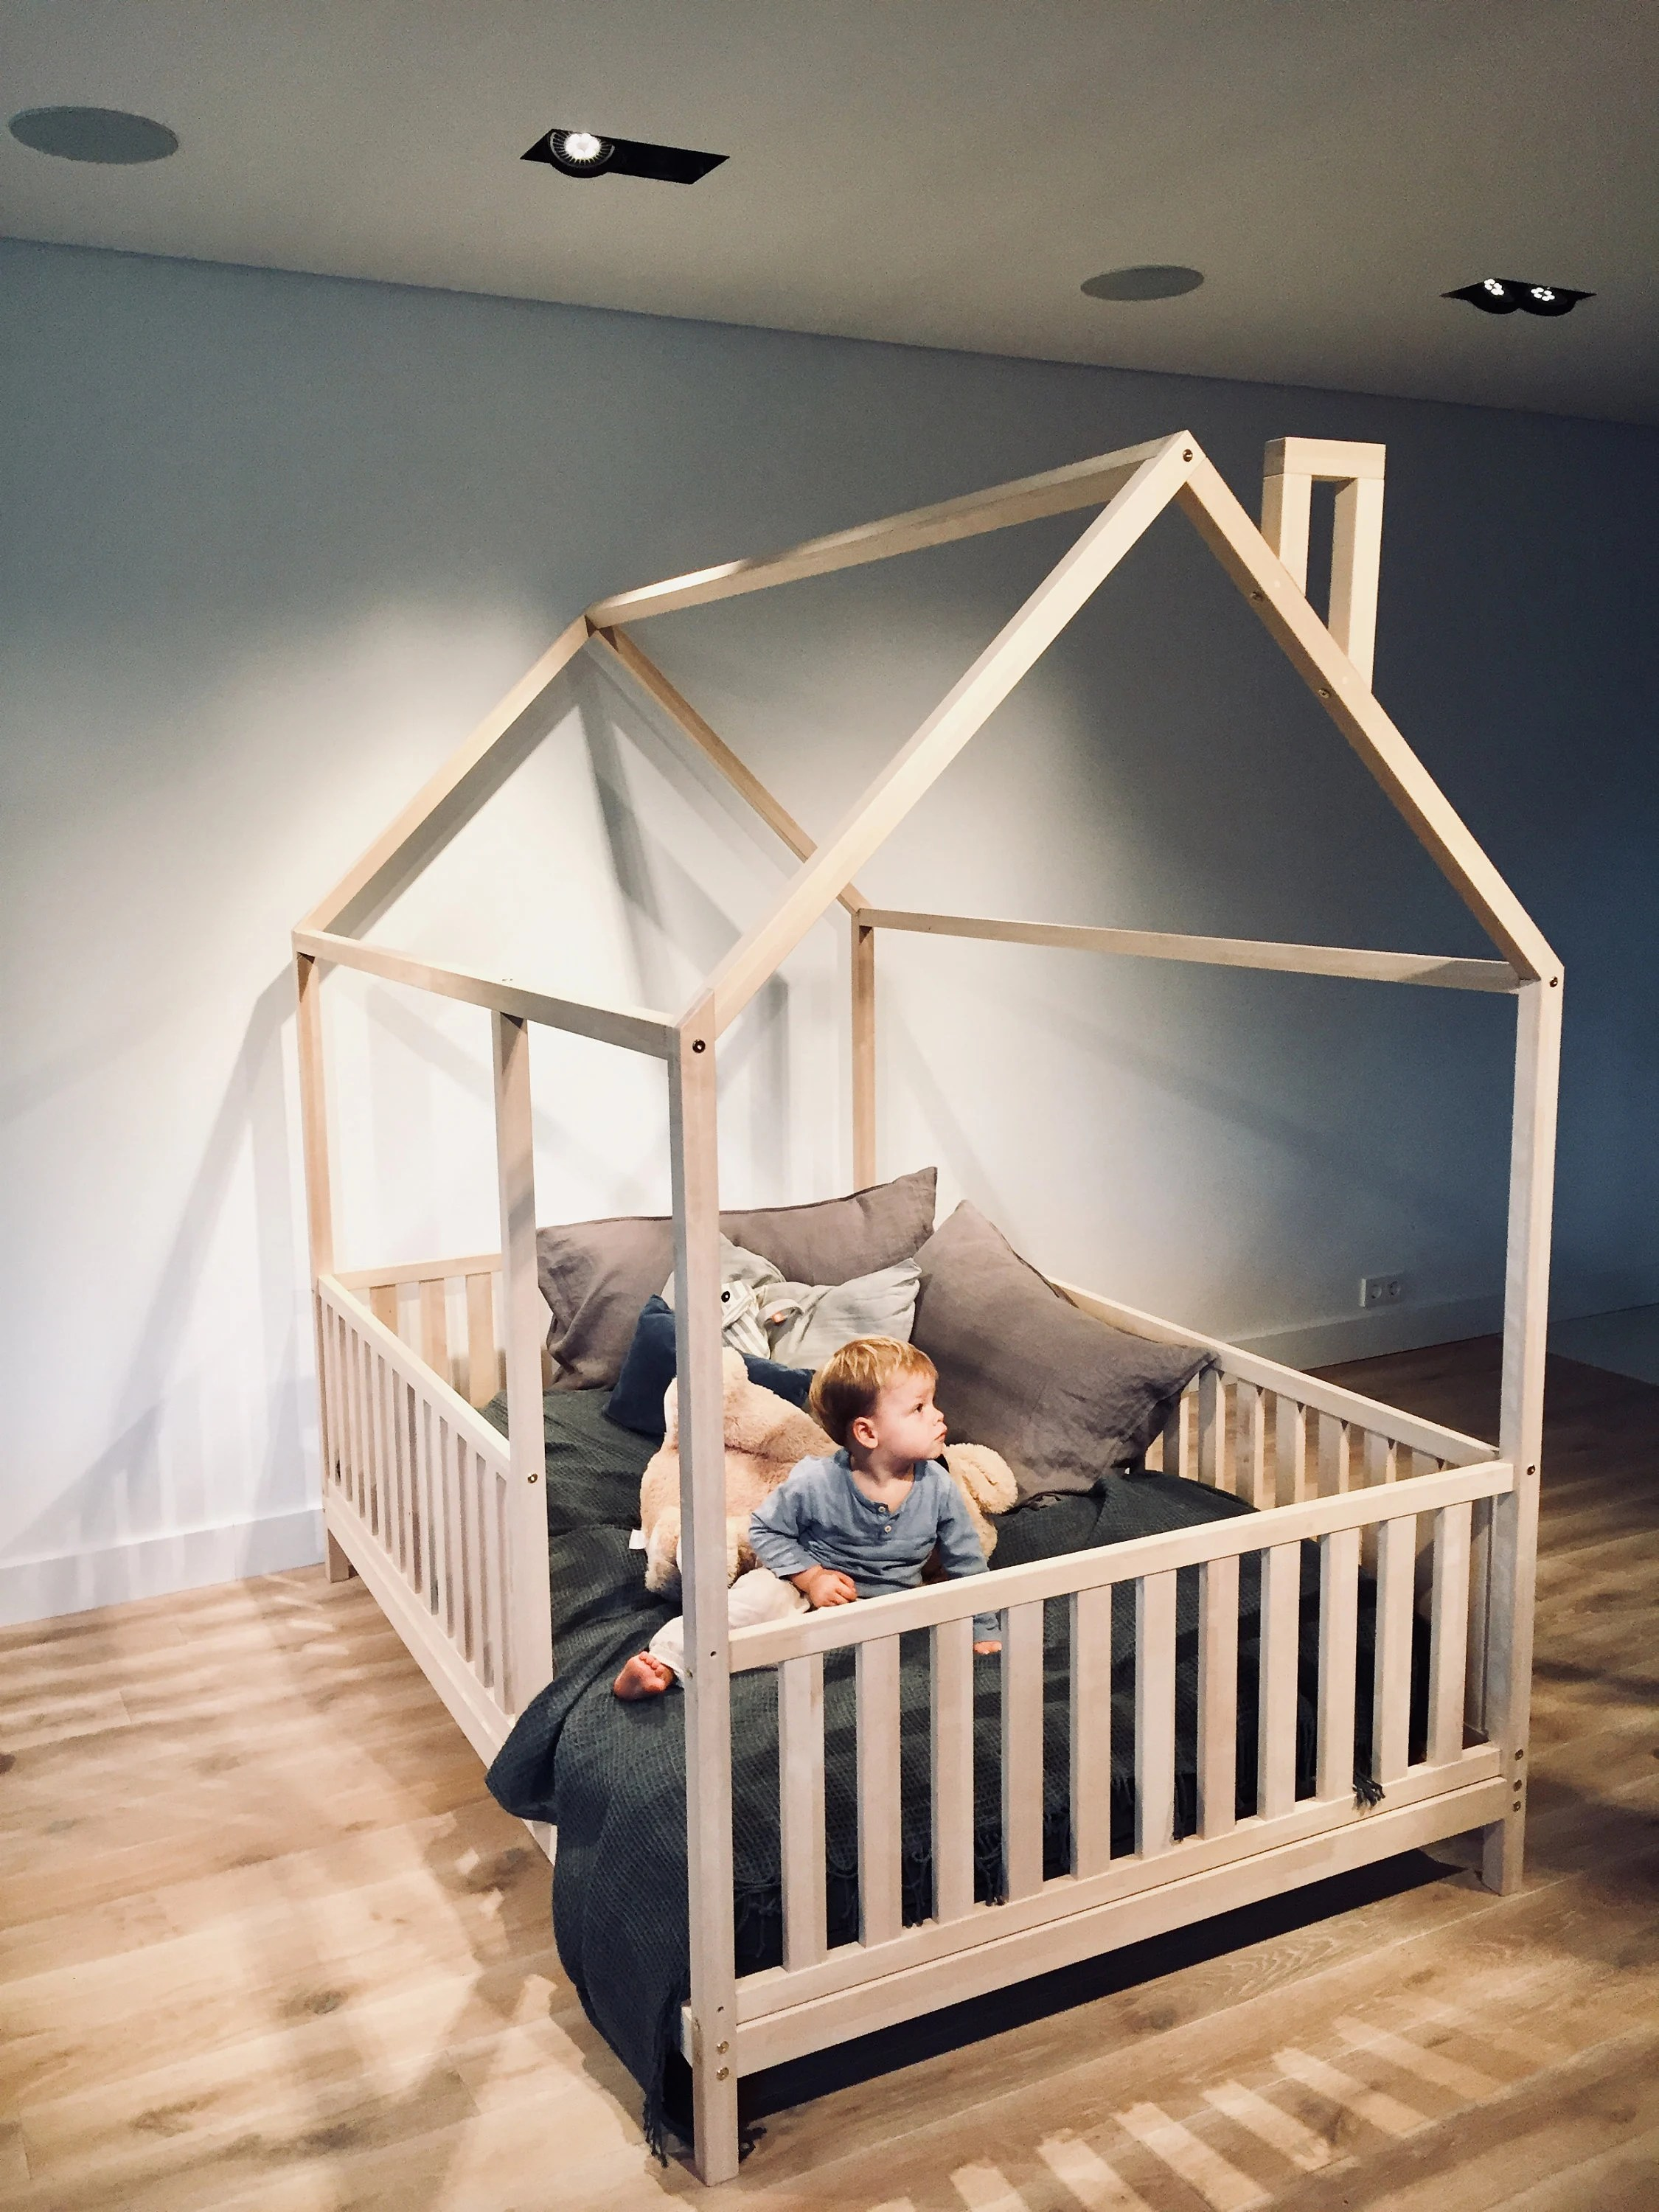 House Bed Frame Uk Montessori Toddler Beds Frame Bed House Bed House Wood House Kids